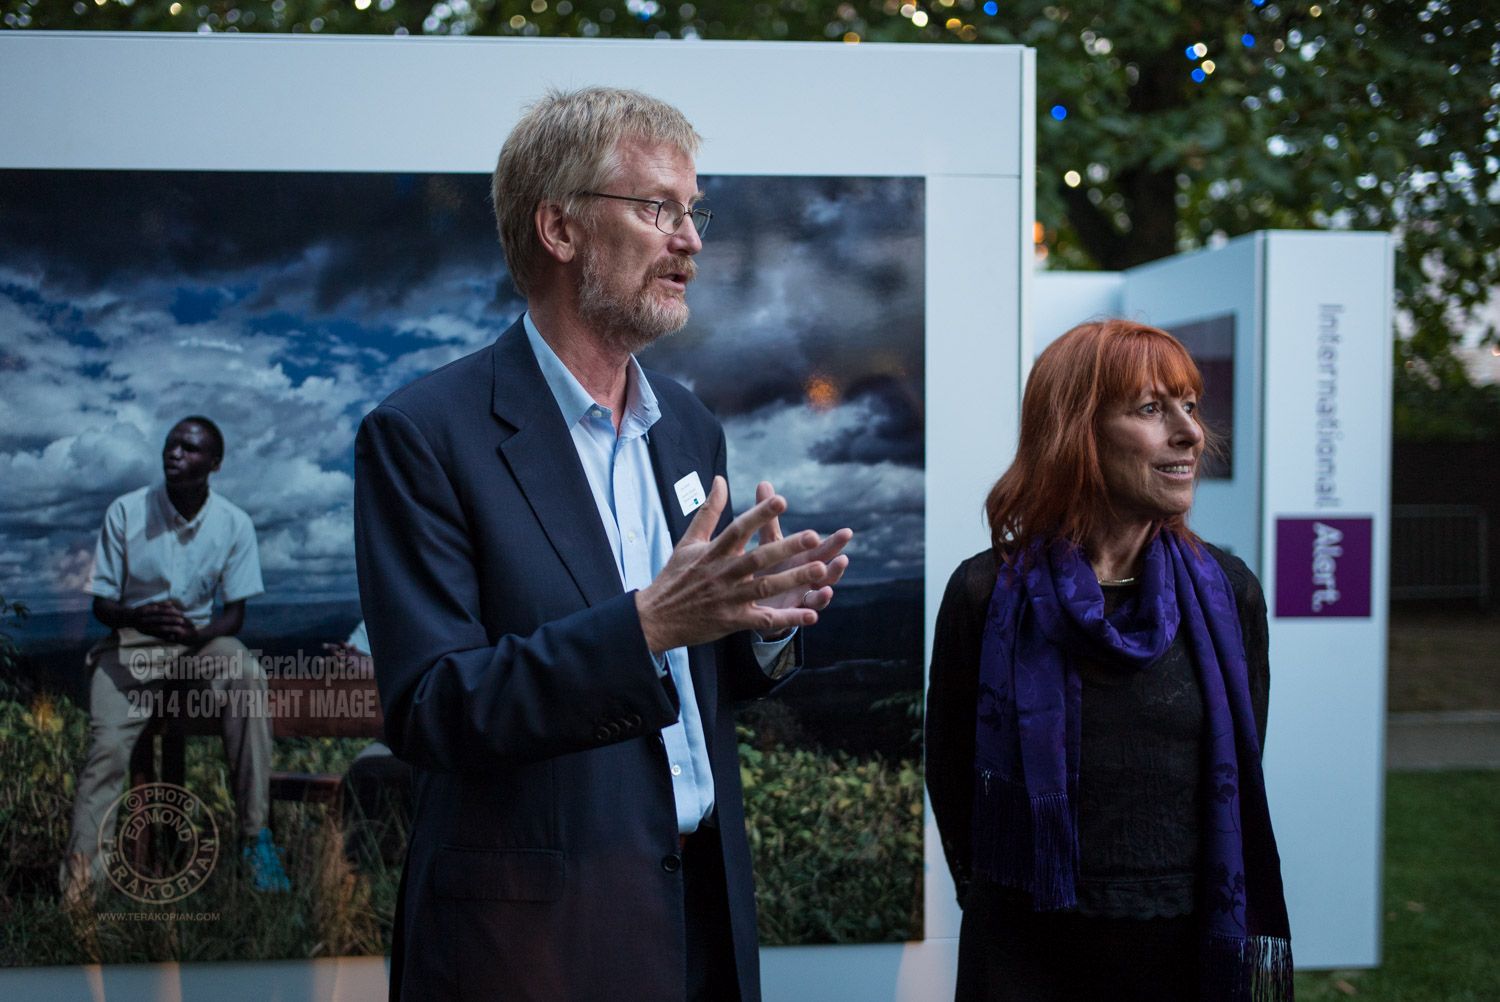 Dan Smith, Secretary General of International Alert  and Carol Allen Storey. The Amahoro Generation by Carol Allen Storey for International Alert. The outdoor exhibition is at the Bernie Spain Gardens, Riverside Walksway (by Oxo Tower Wharf), South Bank, London. September 18, 2014. Photo: Edmond Terakopian